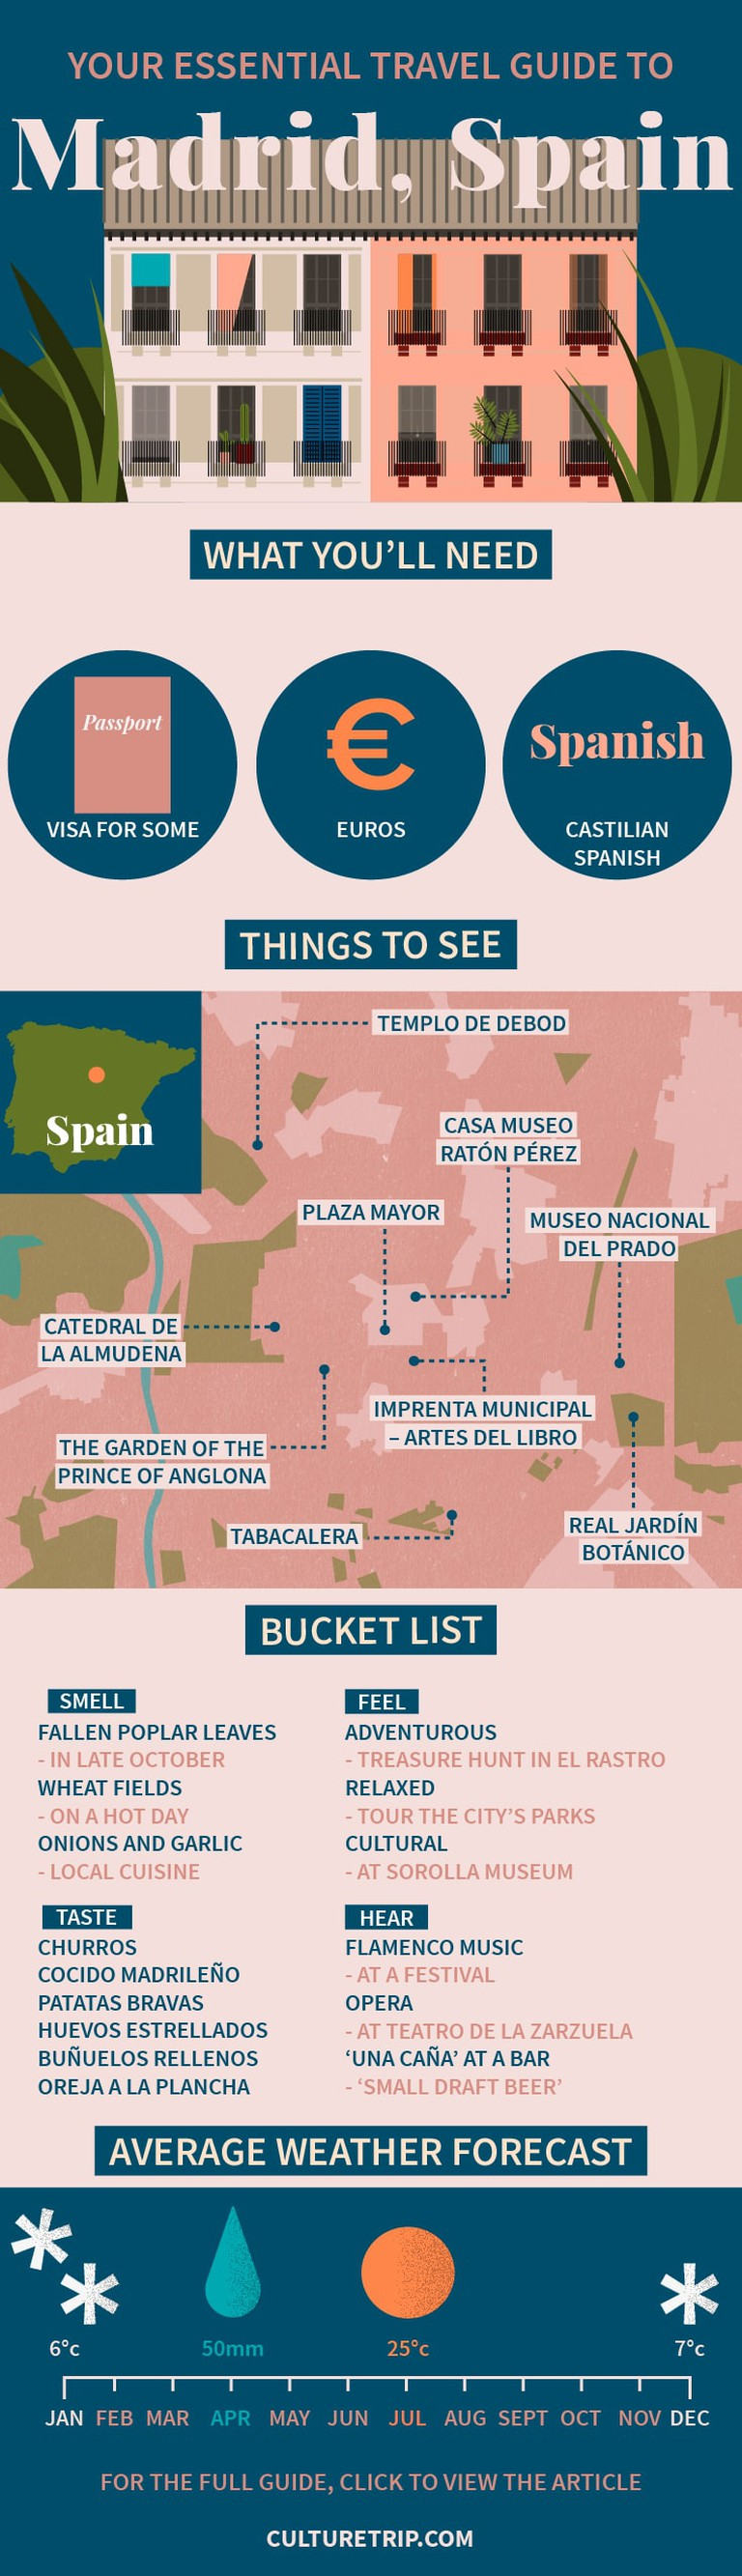 A travel guide to planning your trip to Madrid, Spain.